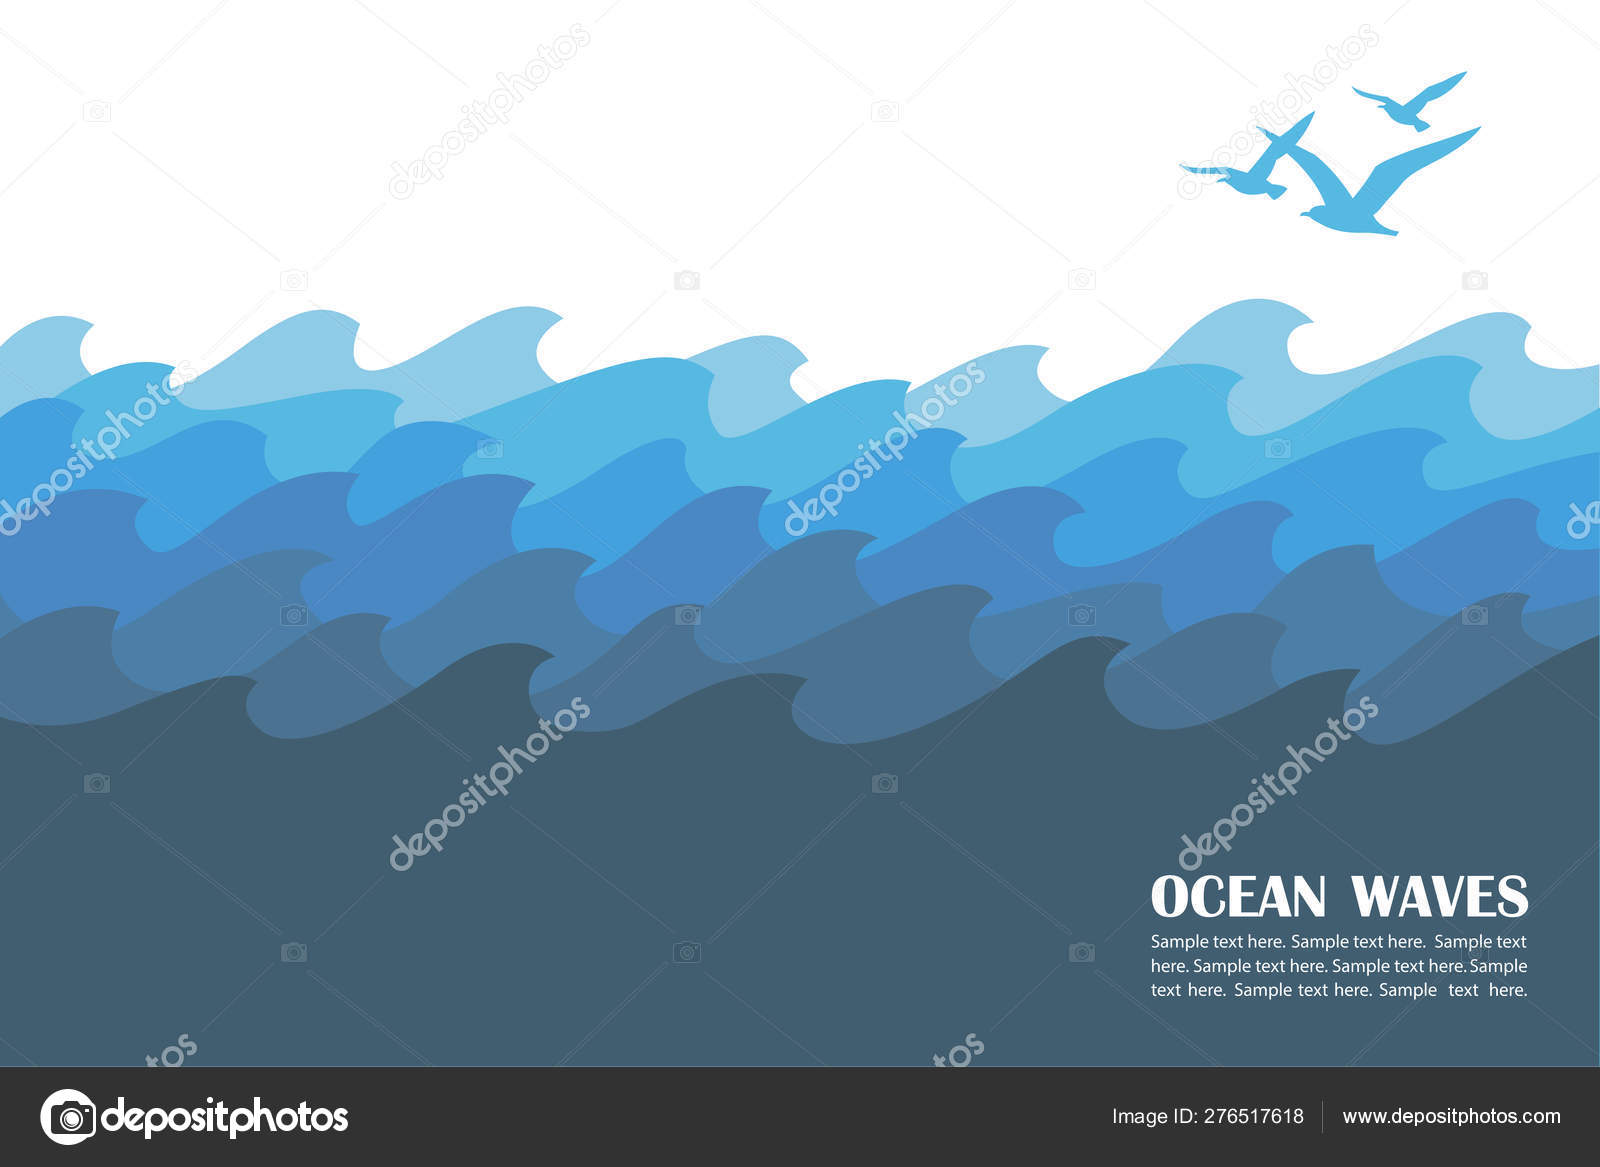 Abstract Background Blue Ocean Waves Seagulls Stock Vector